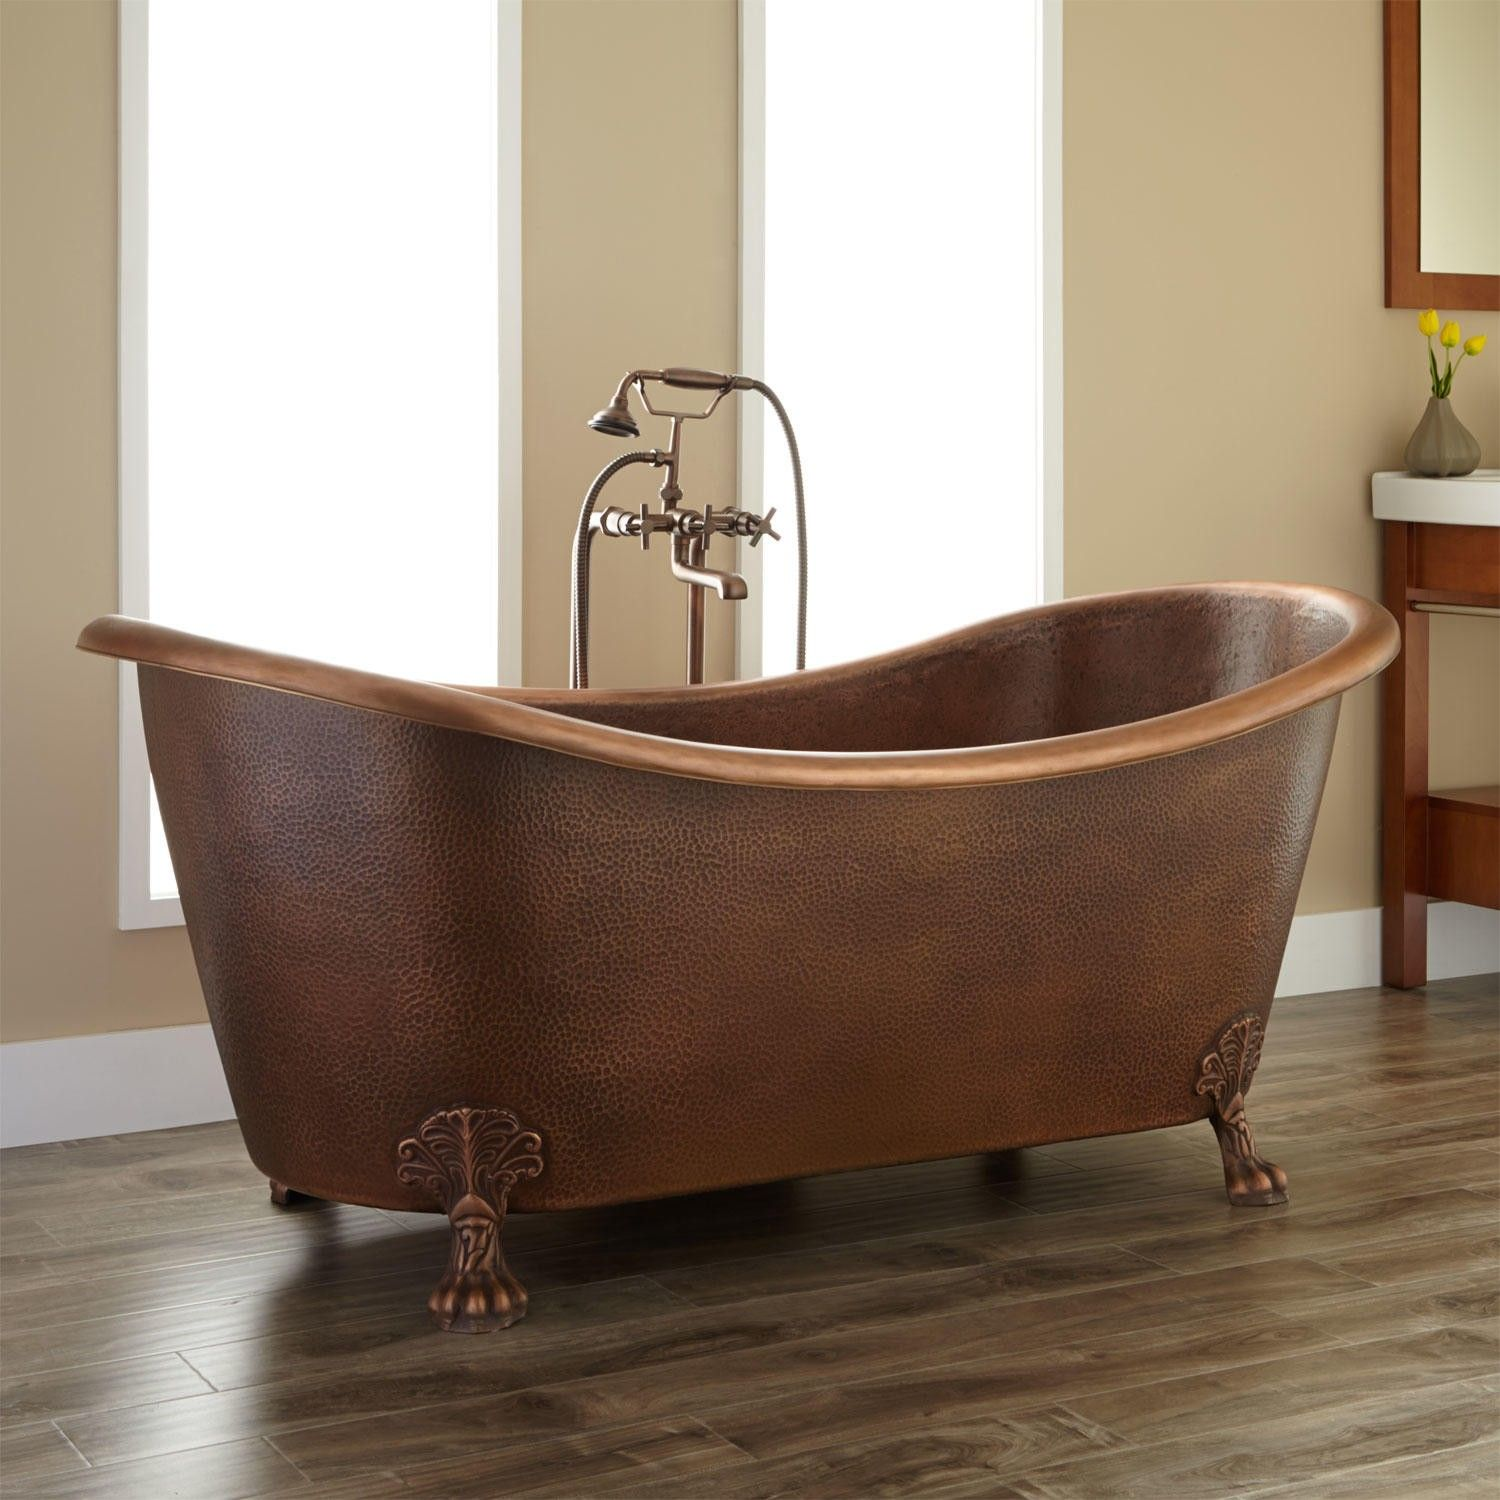 Isabella Copper Double-Slipper Clawfoot Tub | For the Home ...